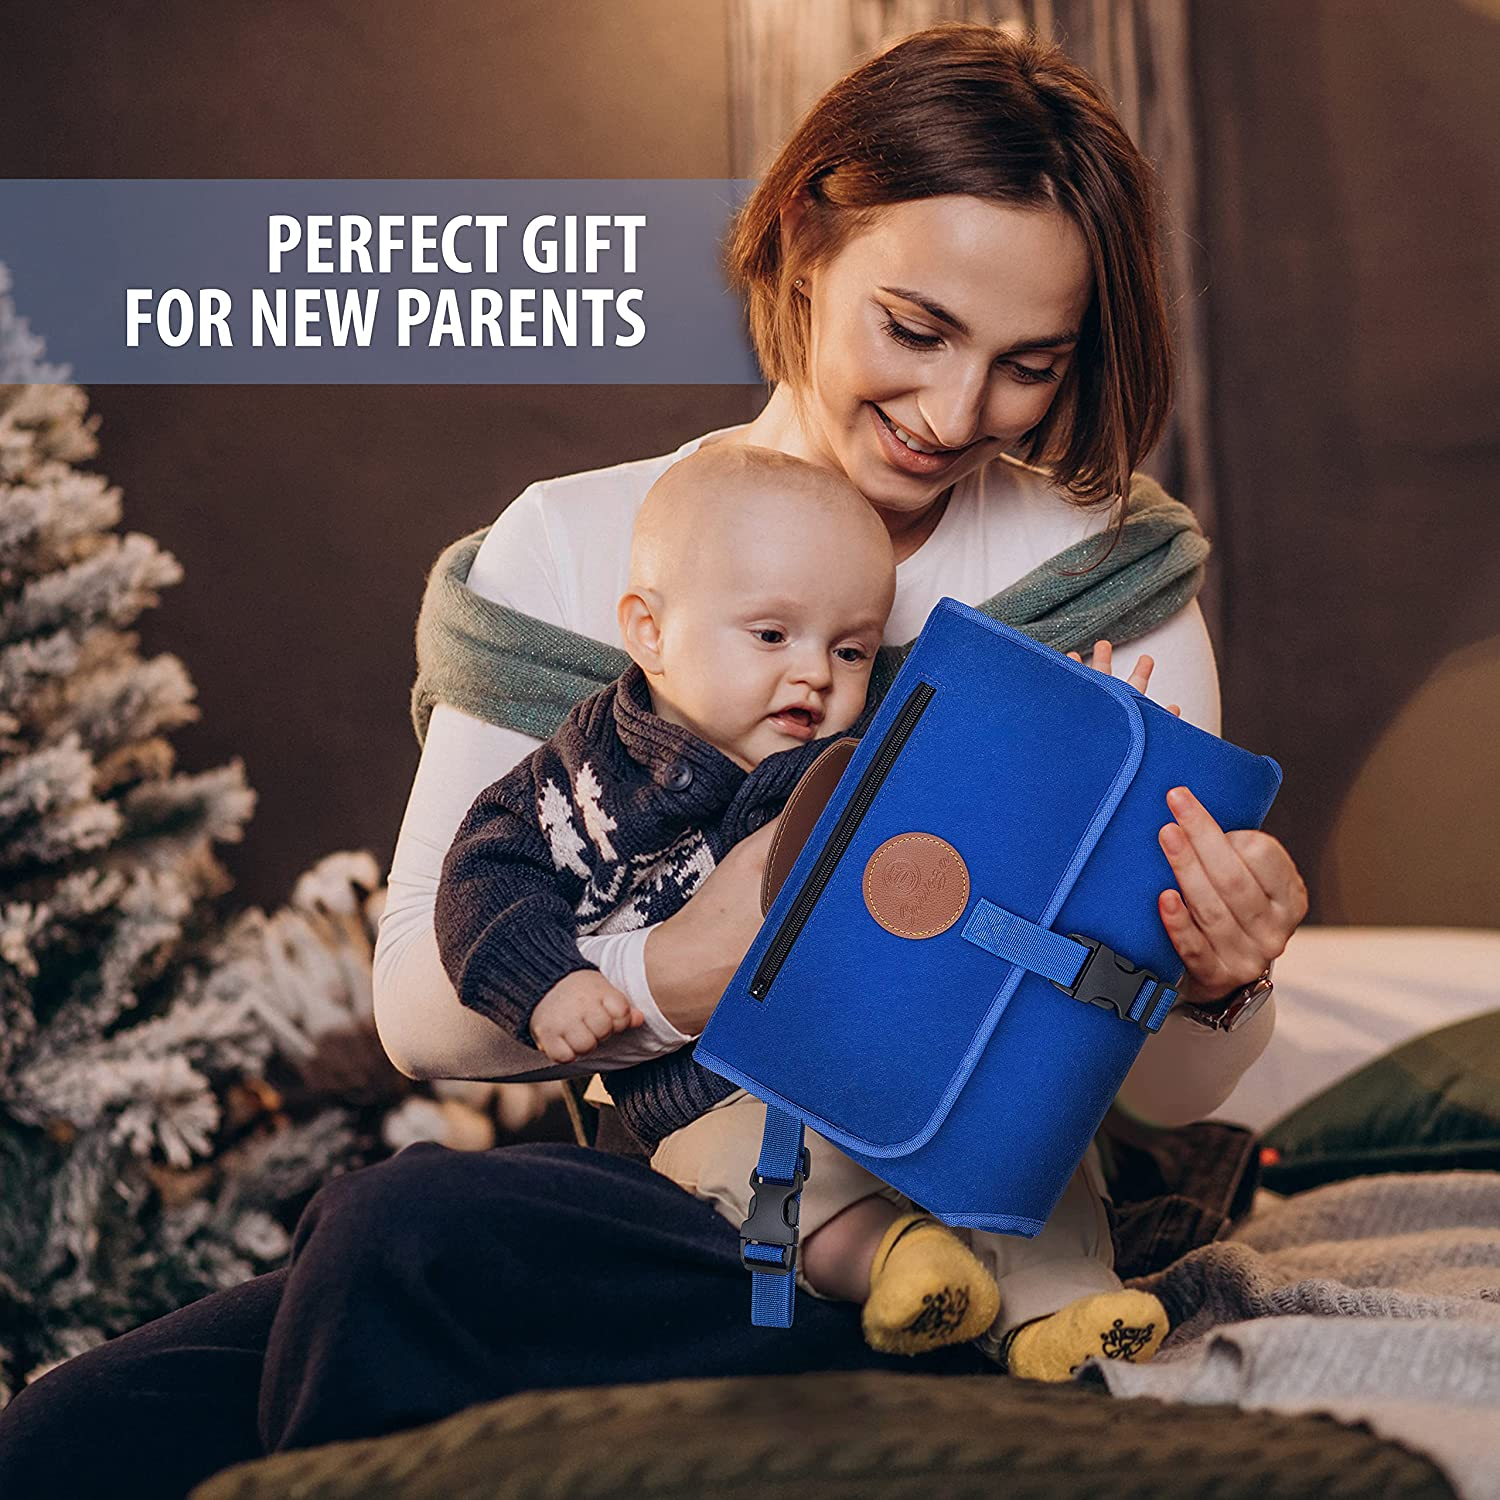 Portable Changing Pad for Baby - Diaper Changing Pad - Waterproof, Foldable and Easy to Clean Travel Changing Pad Mat - Lightweight Diaper Clutch Bag for Parents on The Go.